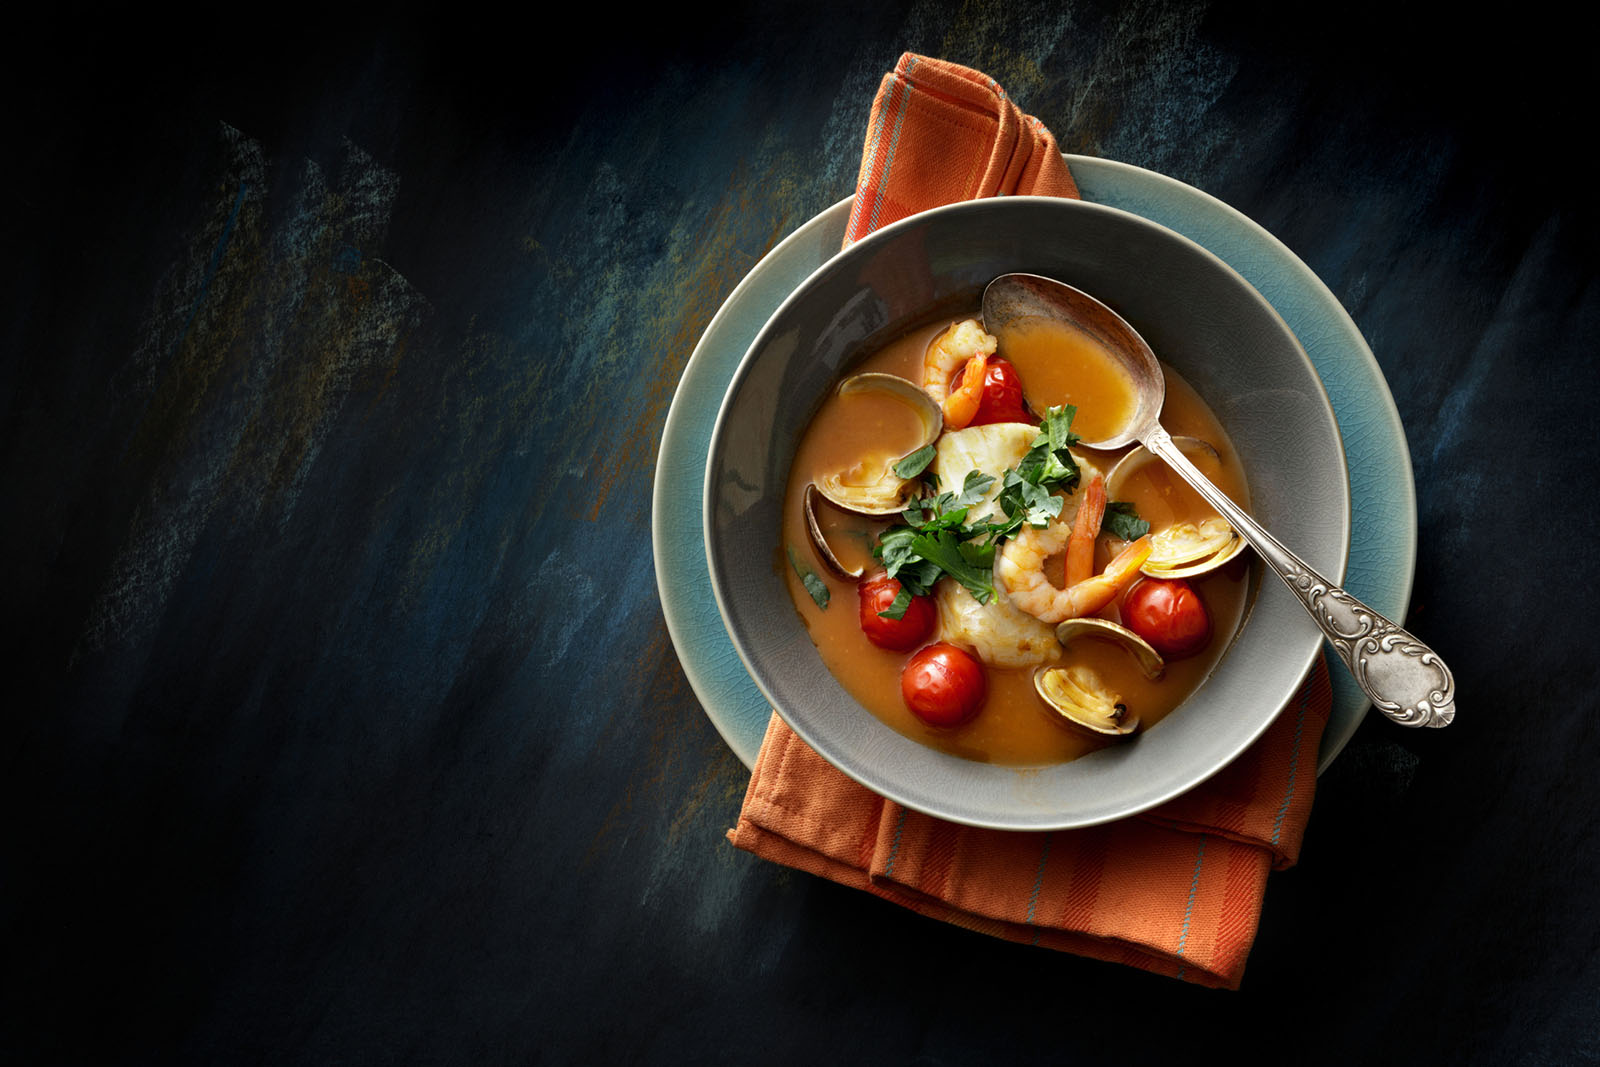 What wine to combine with fish soup?